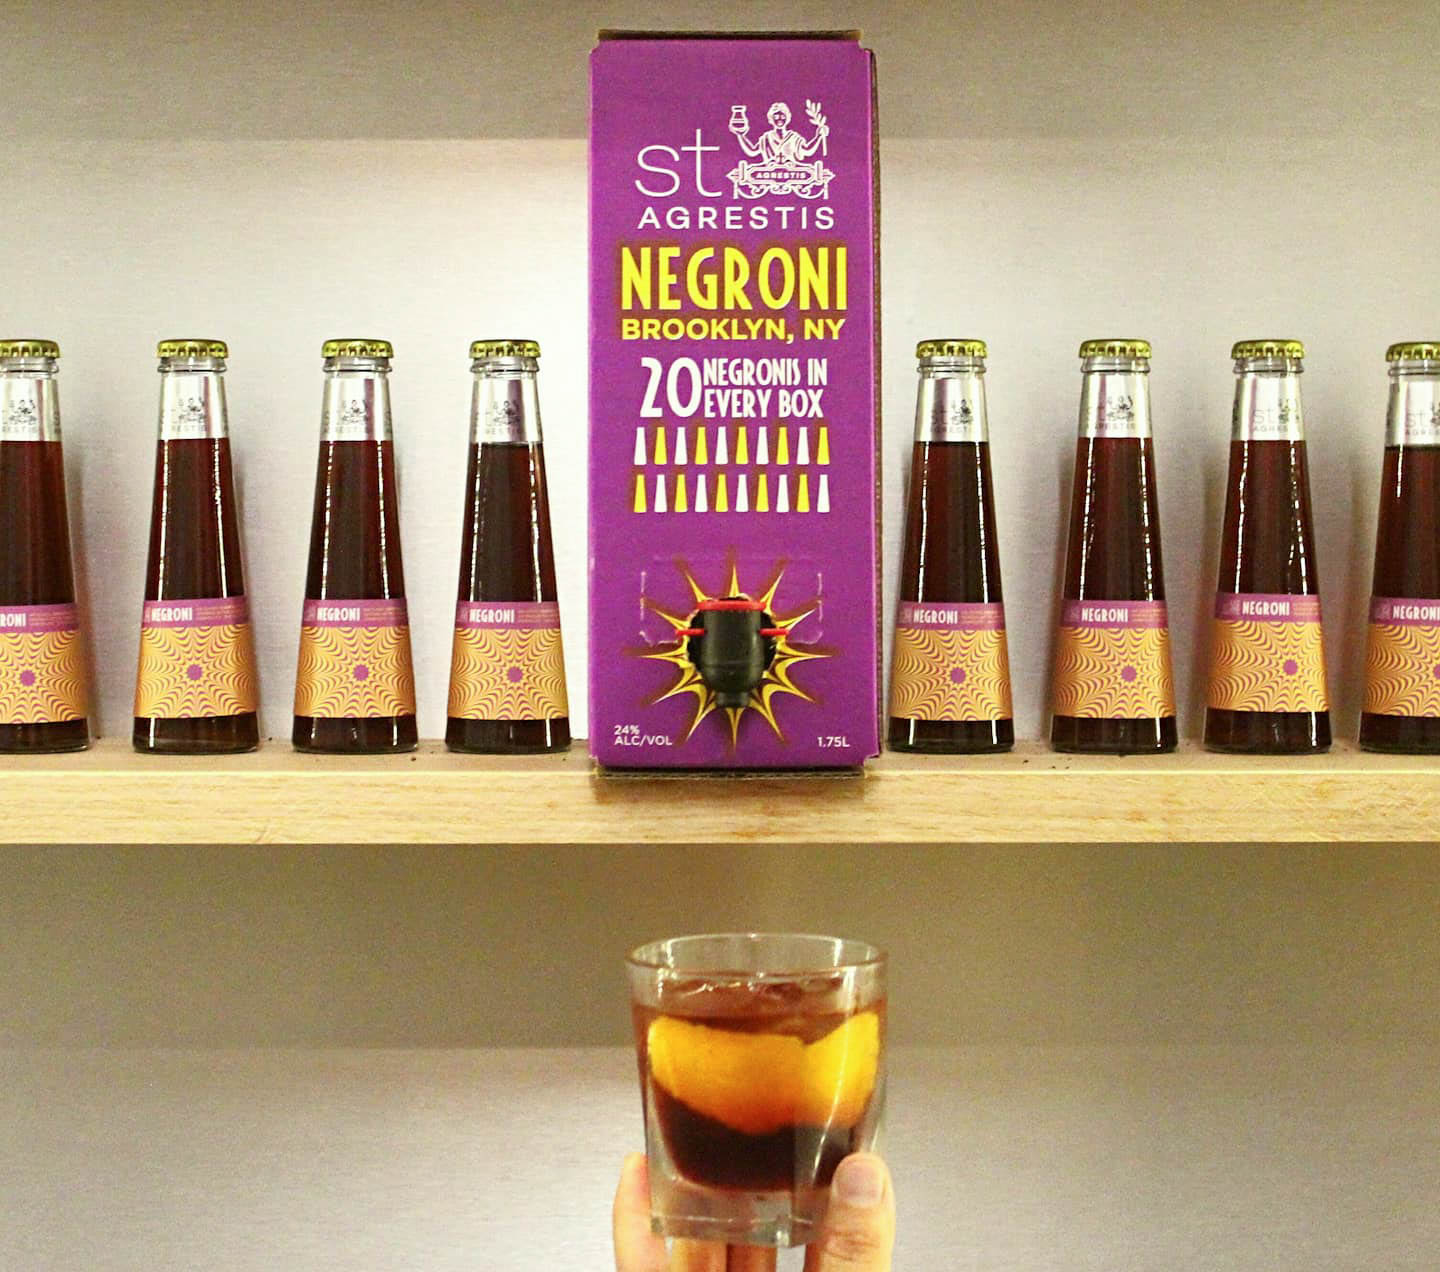 St. Agrestis Box Negroni